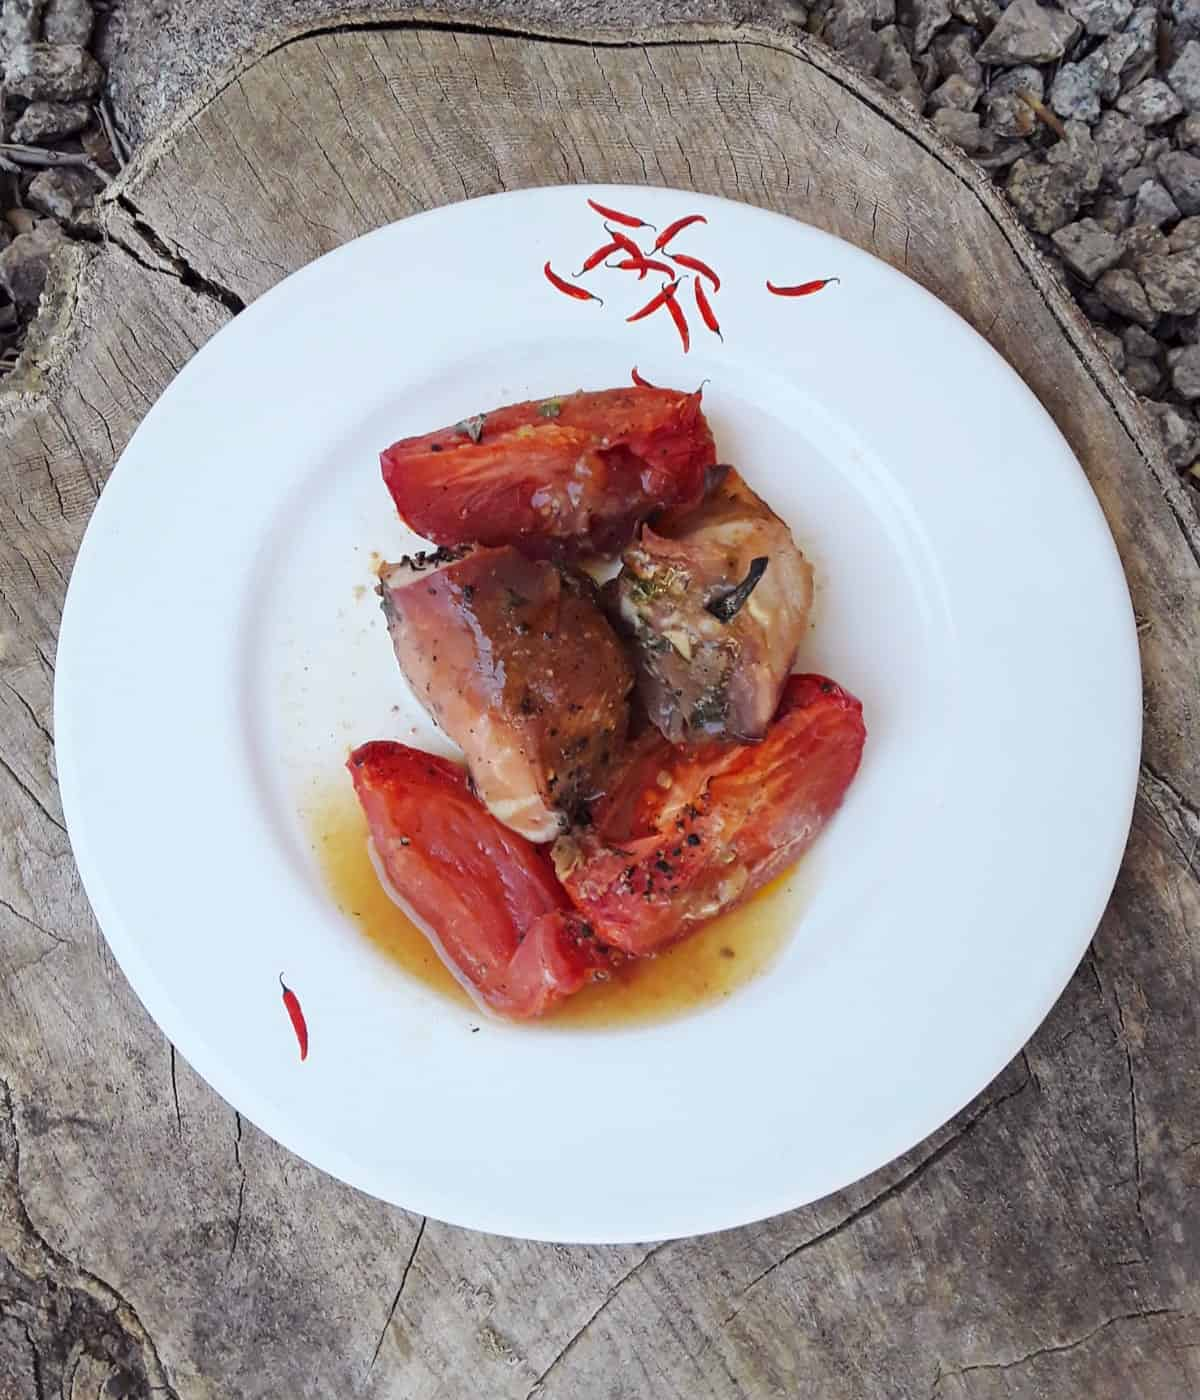 Prosciutto wrapped chicken with tomatoes on white dinner plate with wood and stone background.